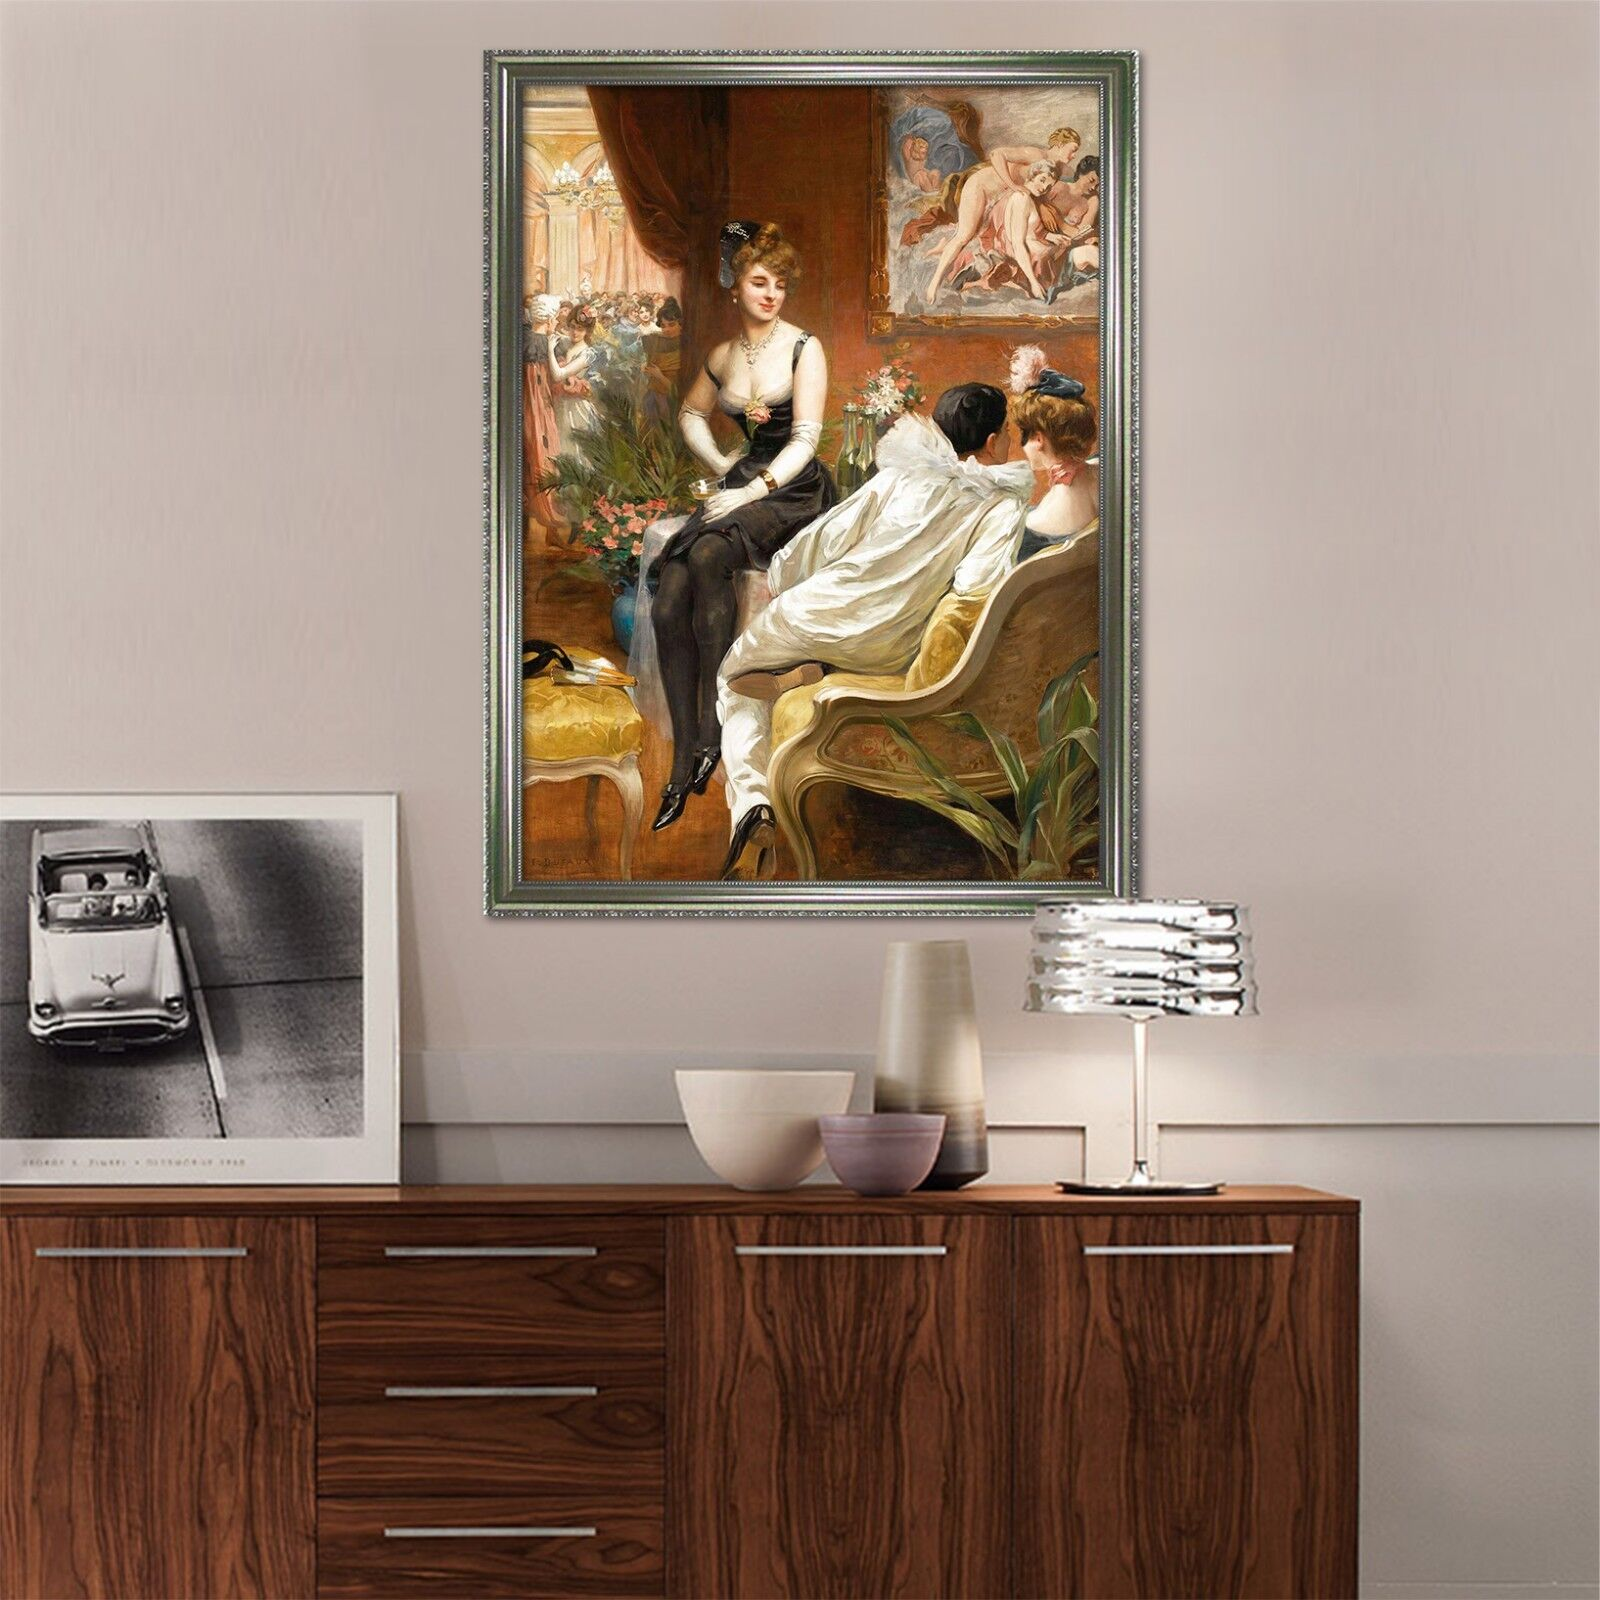 3D Vintage Paintings 67 Fake Framed Poster Home Decor Print Painting Unique Art